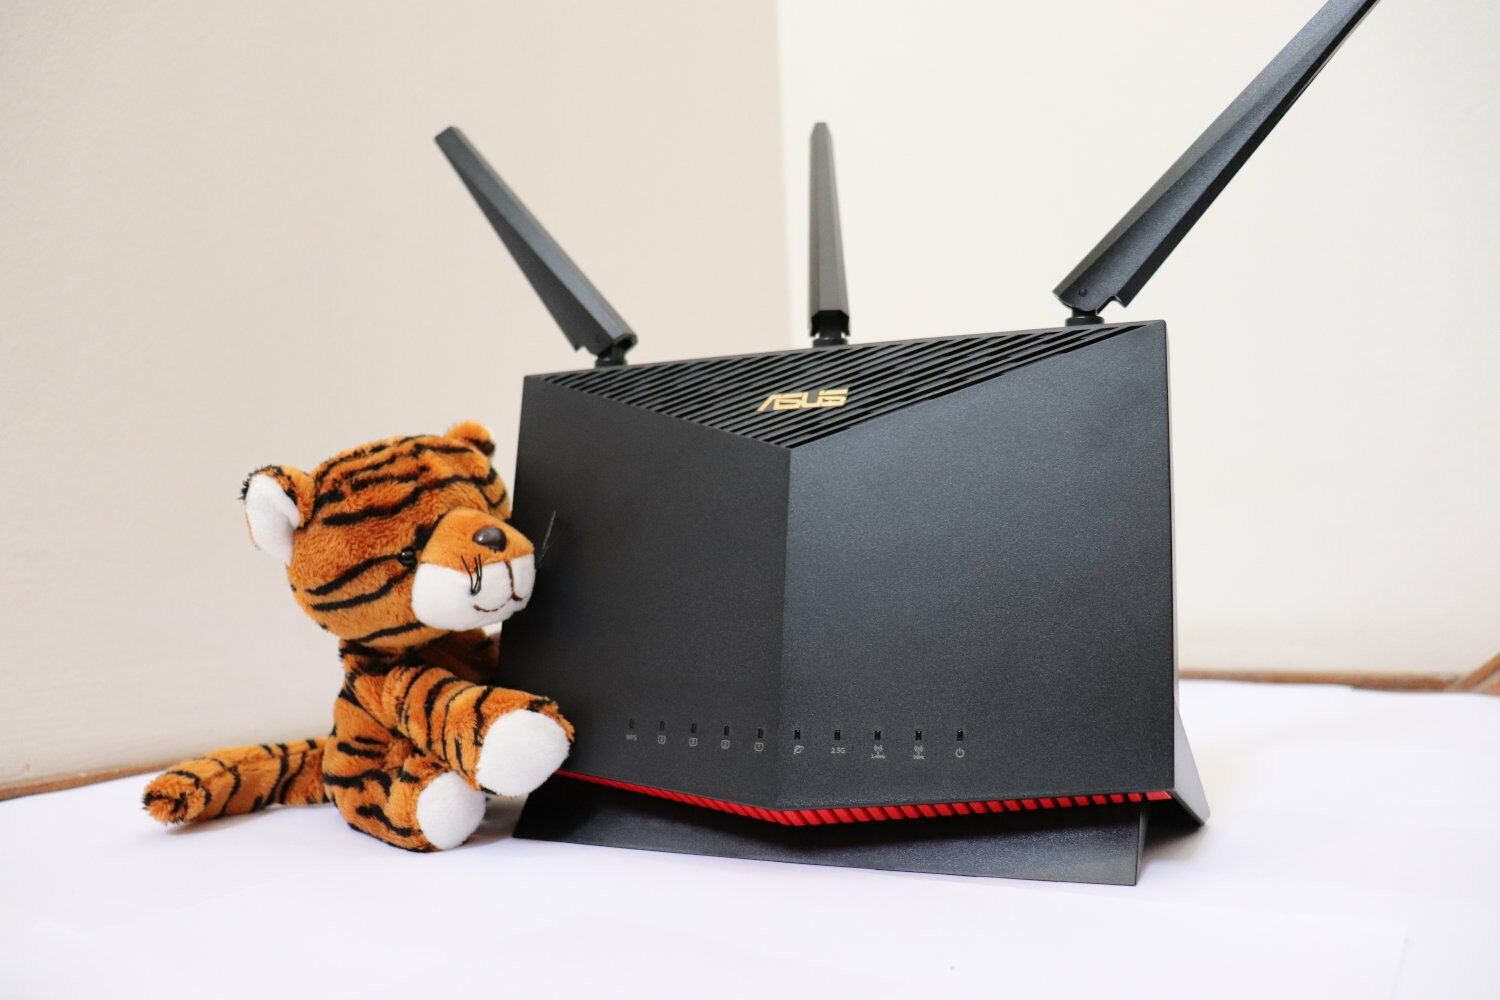 Router ASUS RT-AX86U